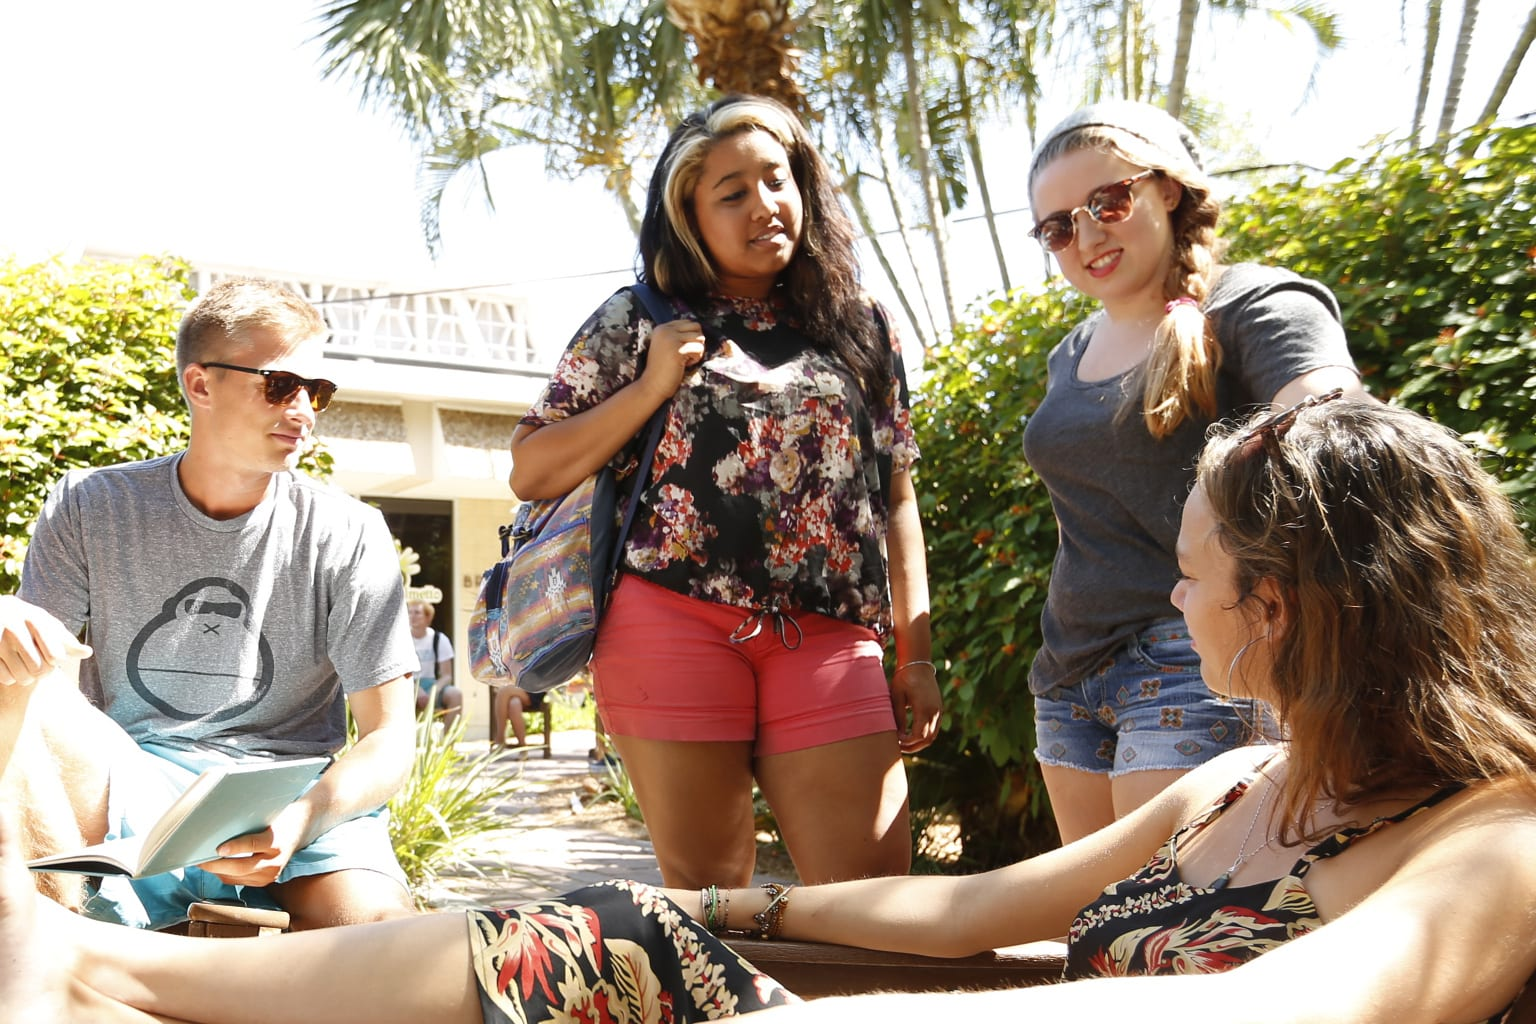 Eckerd students talking together outside